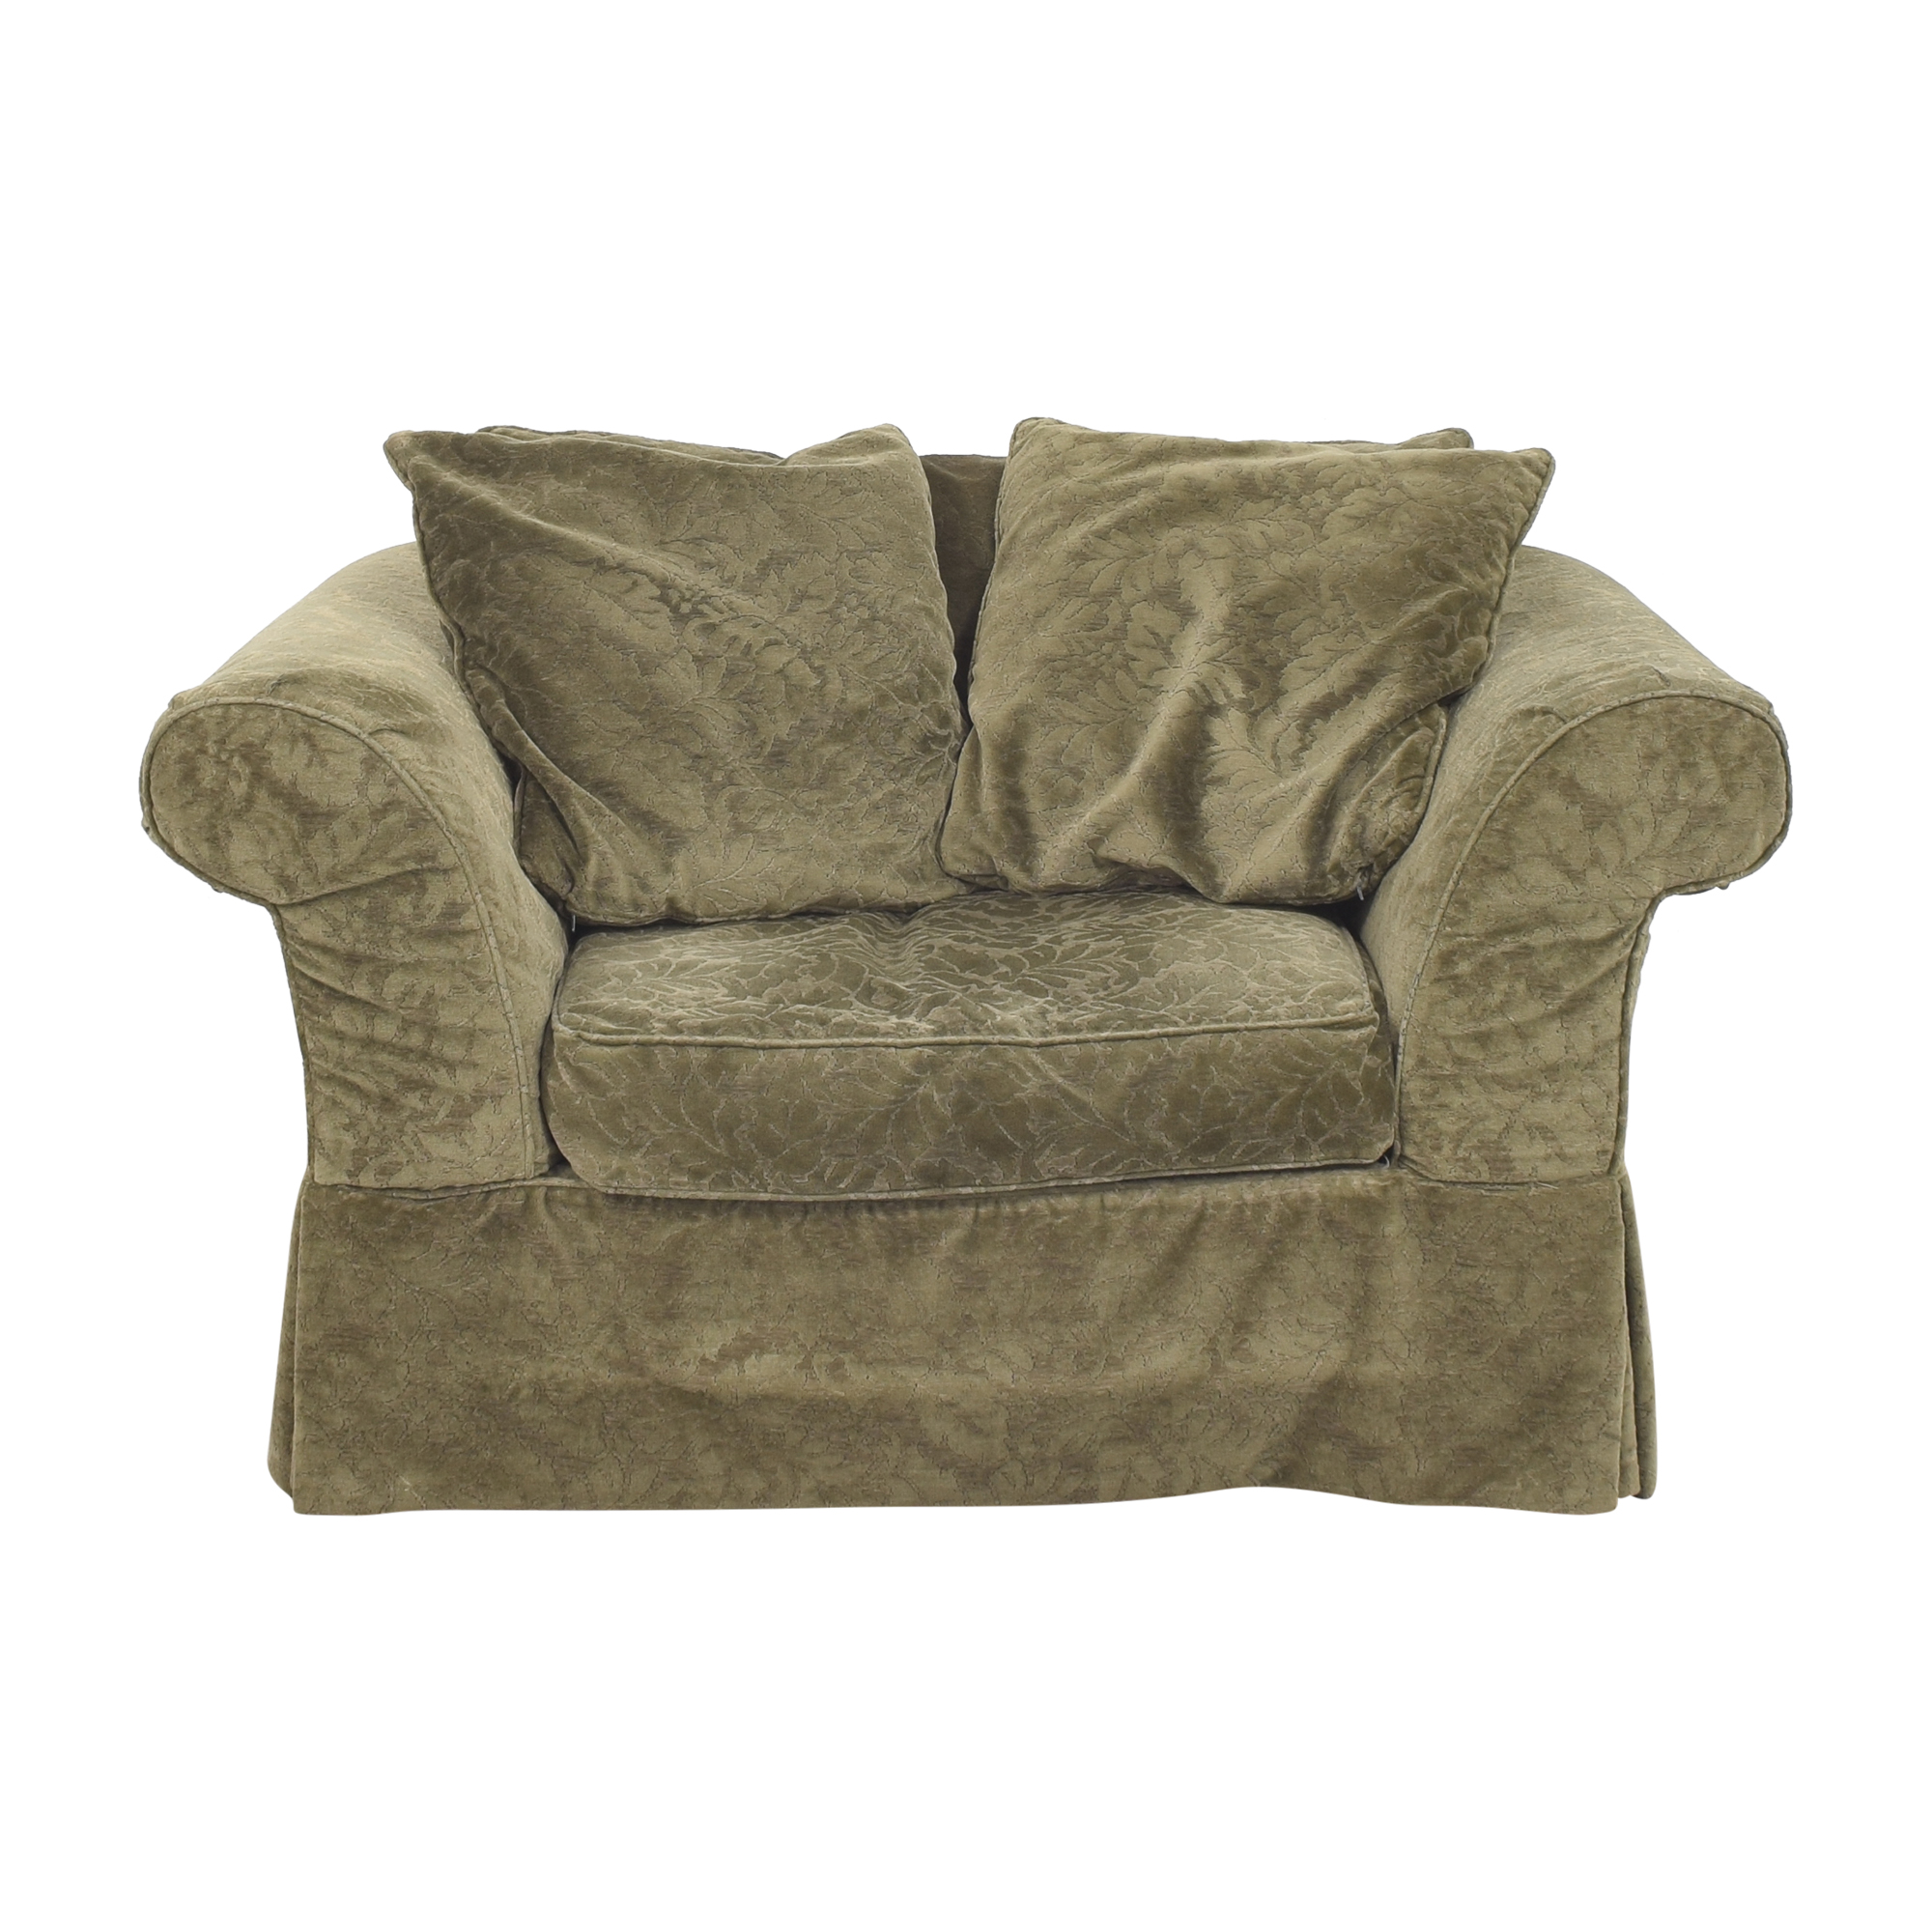 Southern Furniture of Conover Southern Furniture of Conover Chair and a Half coupon